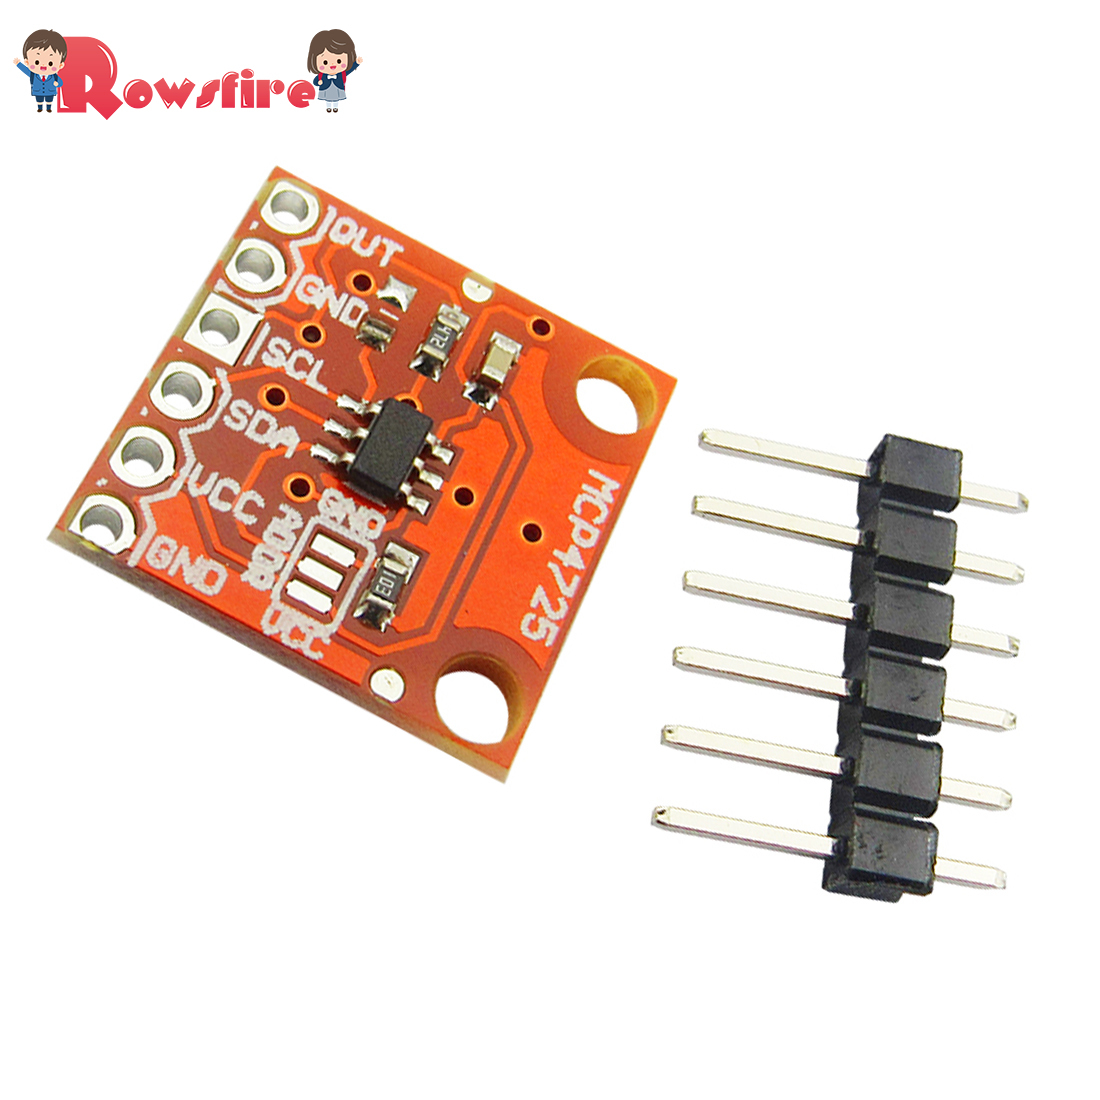 MCP4725 Module I2C DAC Breakout Development Board 12 Digit DAC Digital Model Development Board